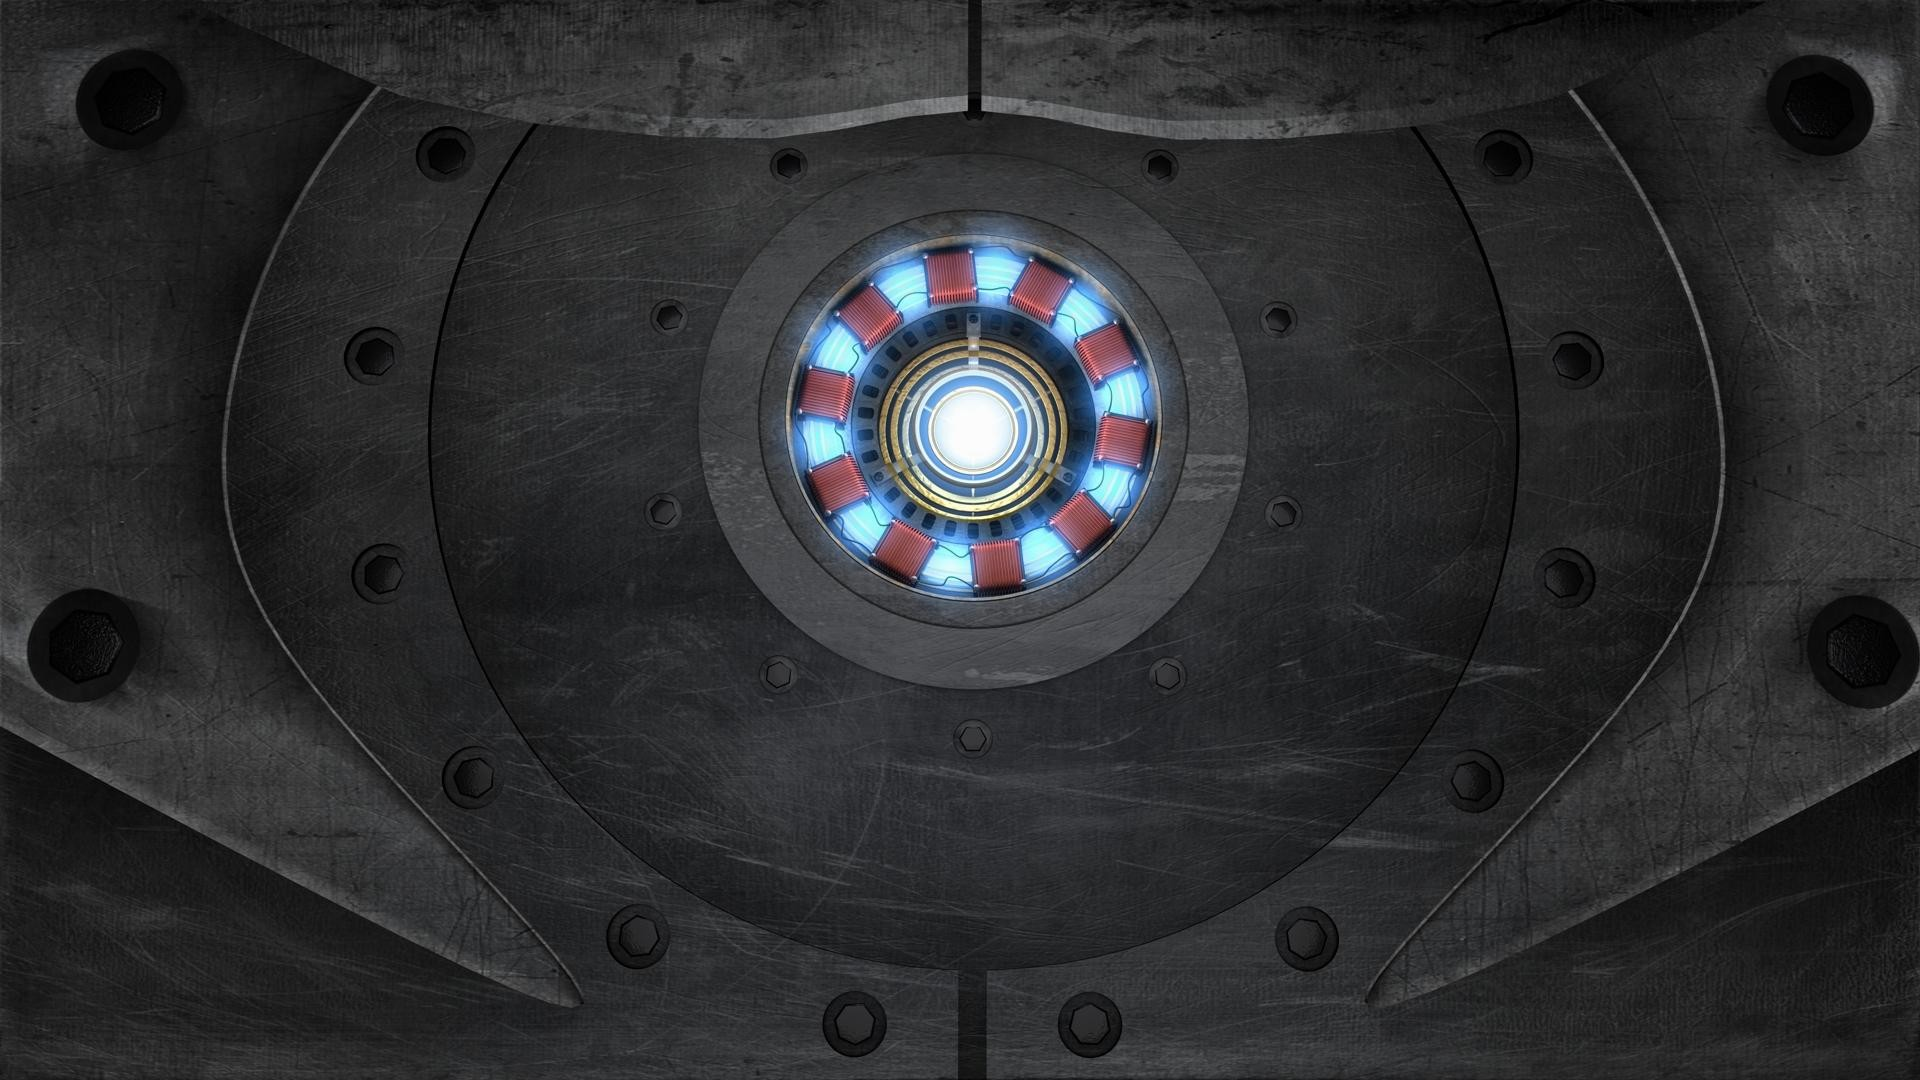 1920x1080 wallpaper.wiki-Download-Arc-Reactor-Iron-Man-Image-